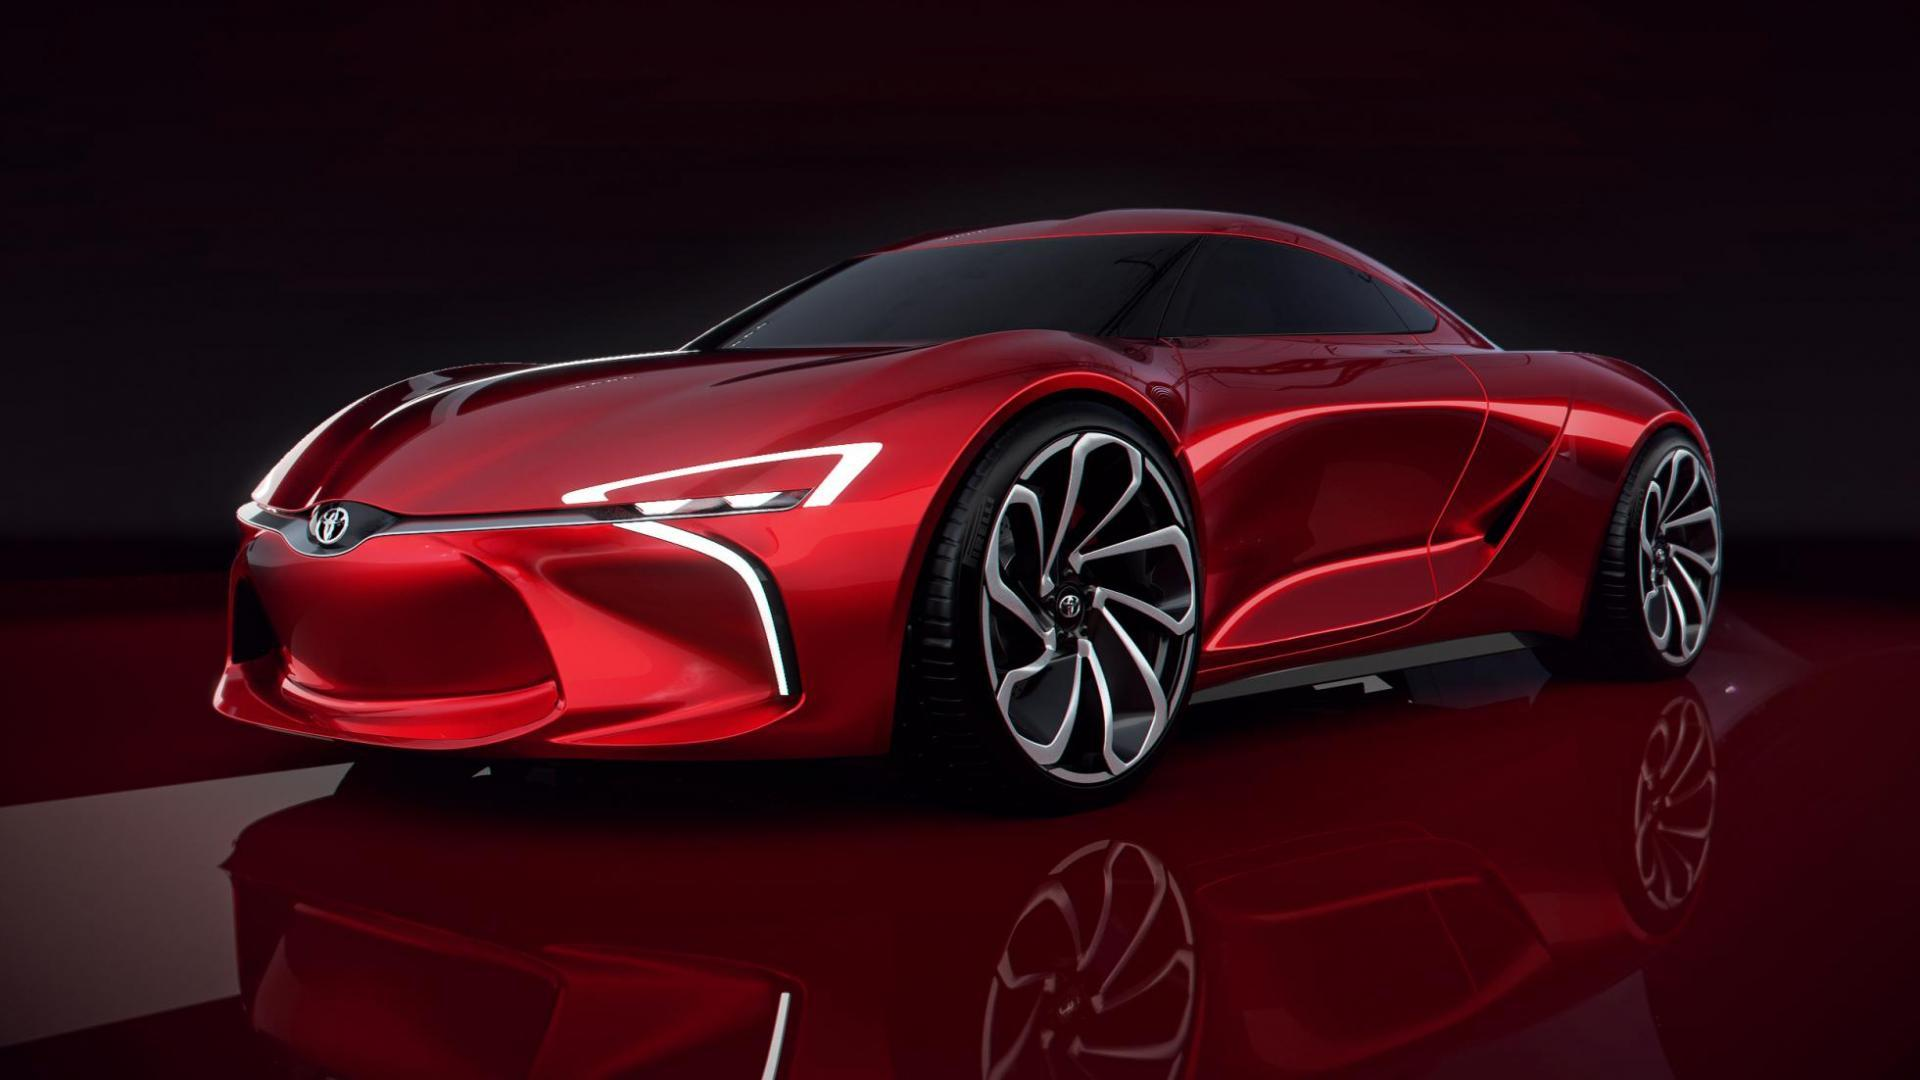 toyota-mr-2-2019-render-1.jpg